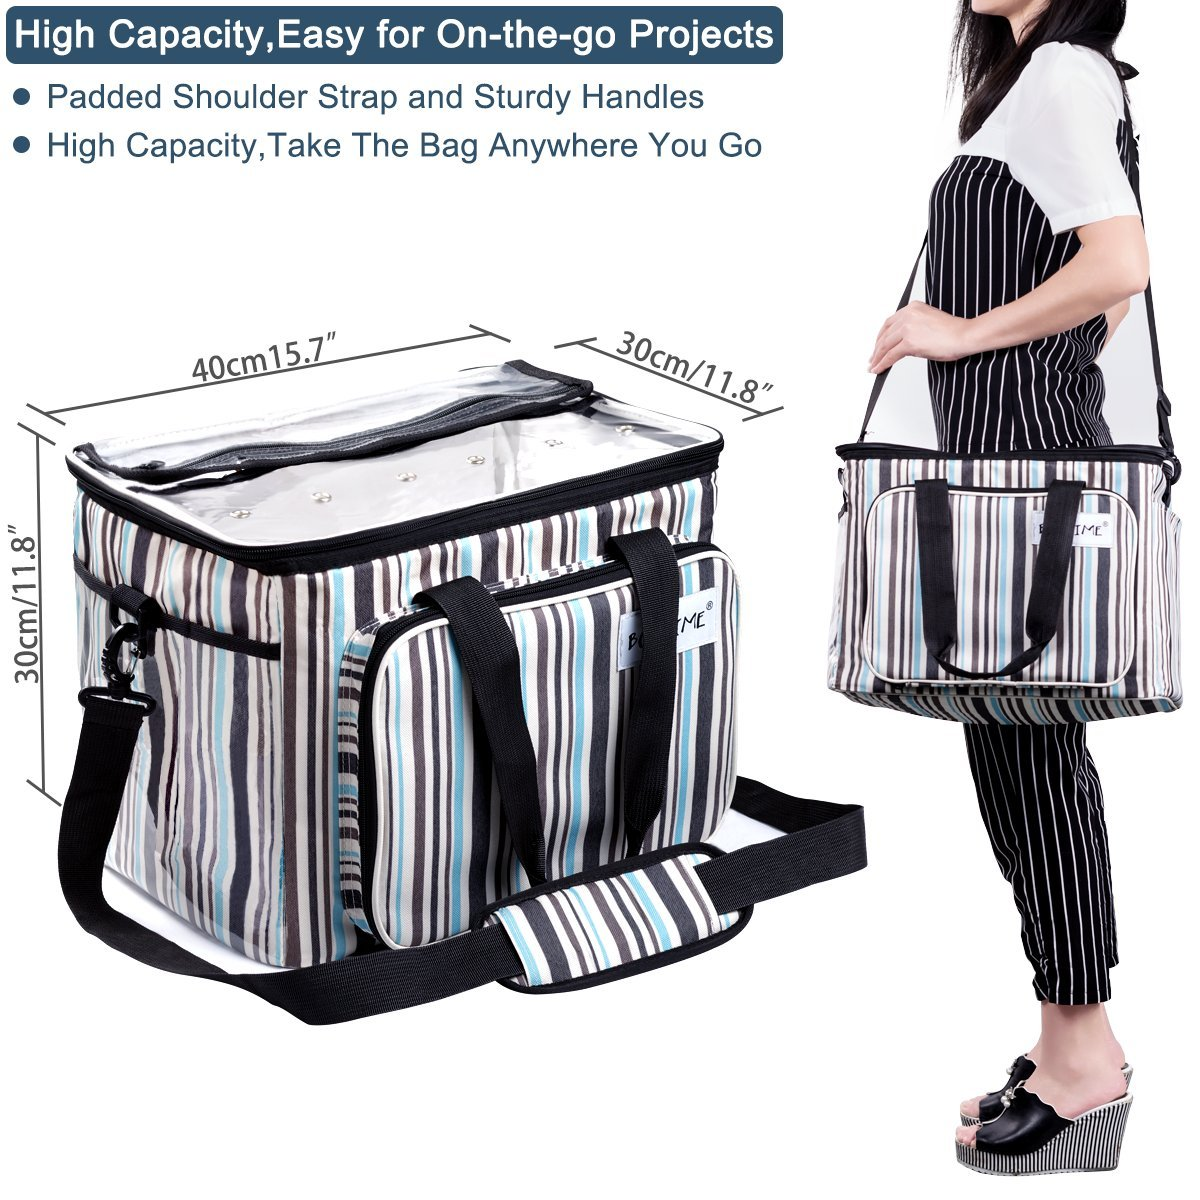 BONTIME Knitting Bag - High Capacity Striped Yarn Storage Tote Bag,Project Bags with Roomy Interior,Great for Organizing Everything You Need for Each of Projects,Large by BONTIME (Image #7)